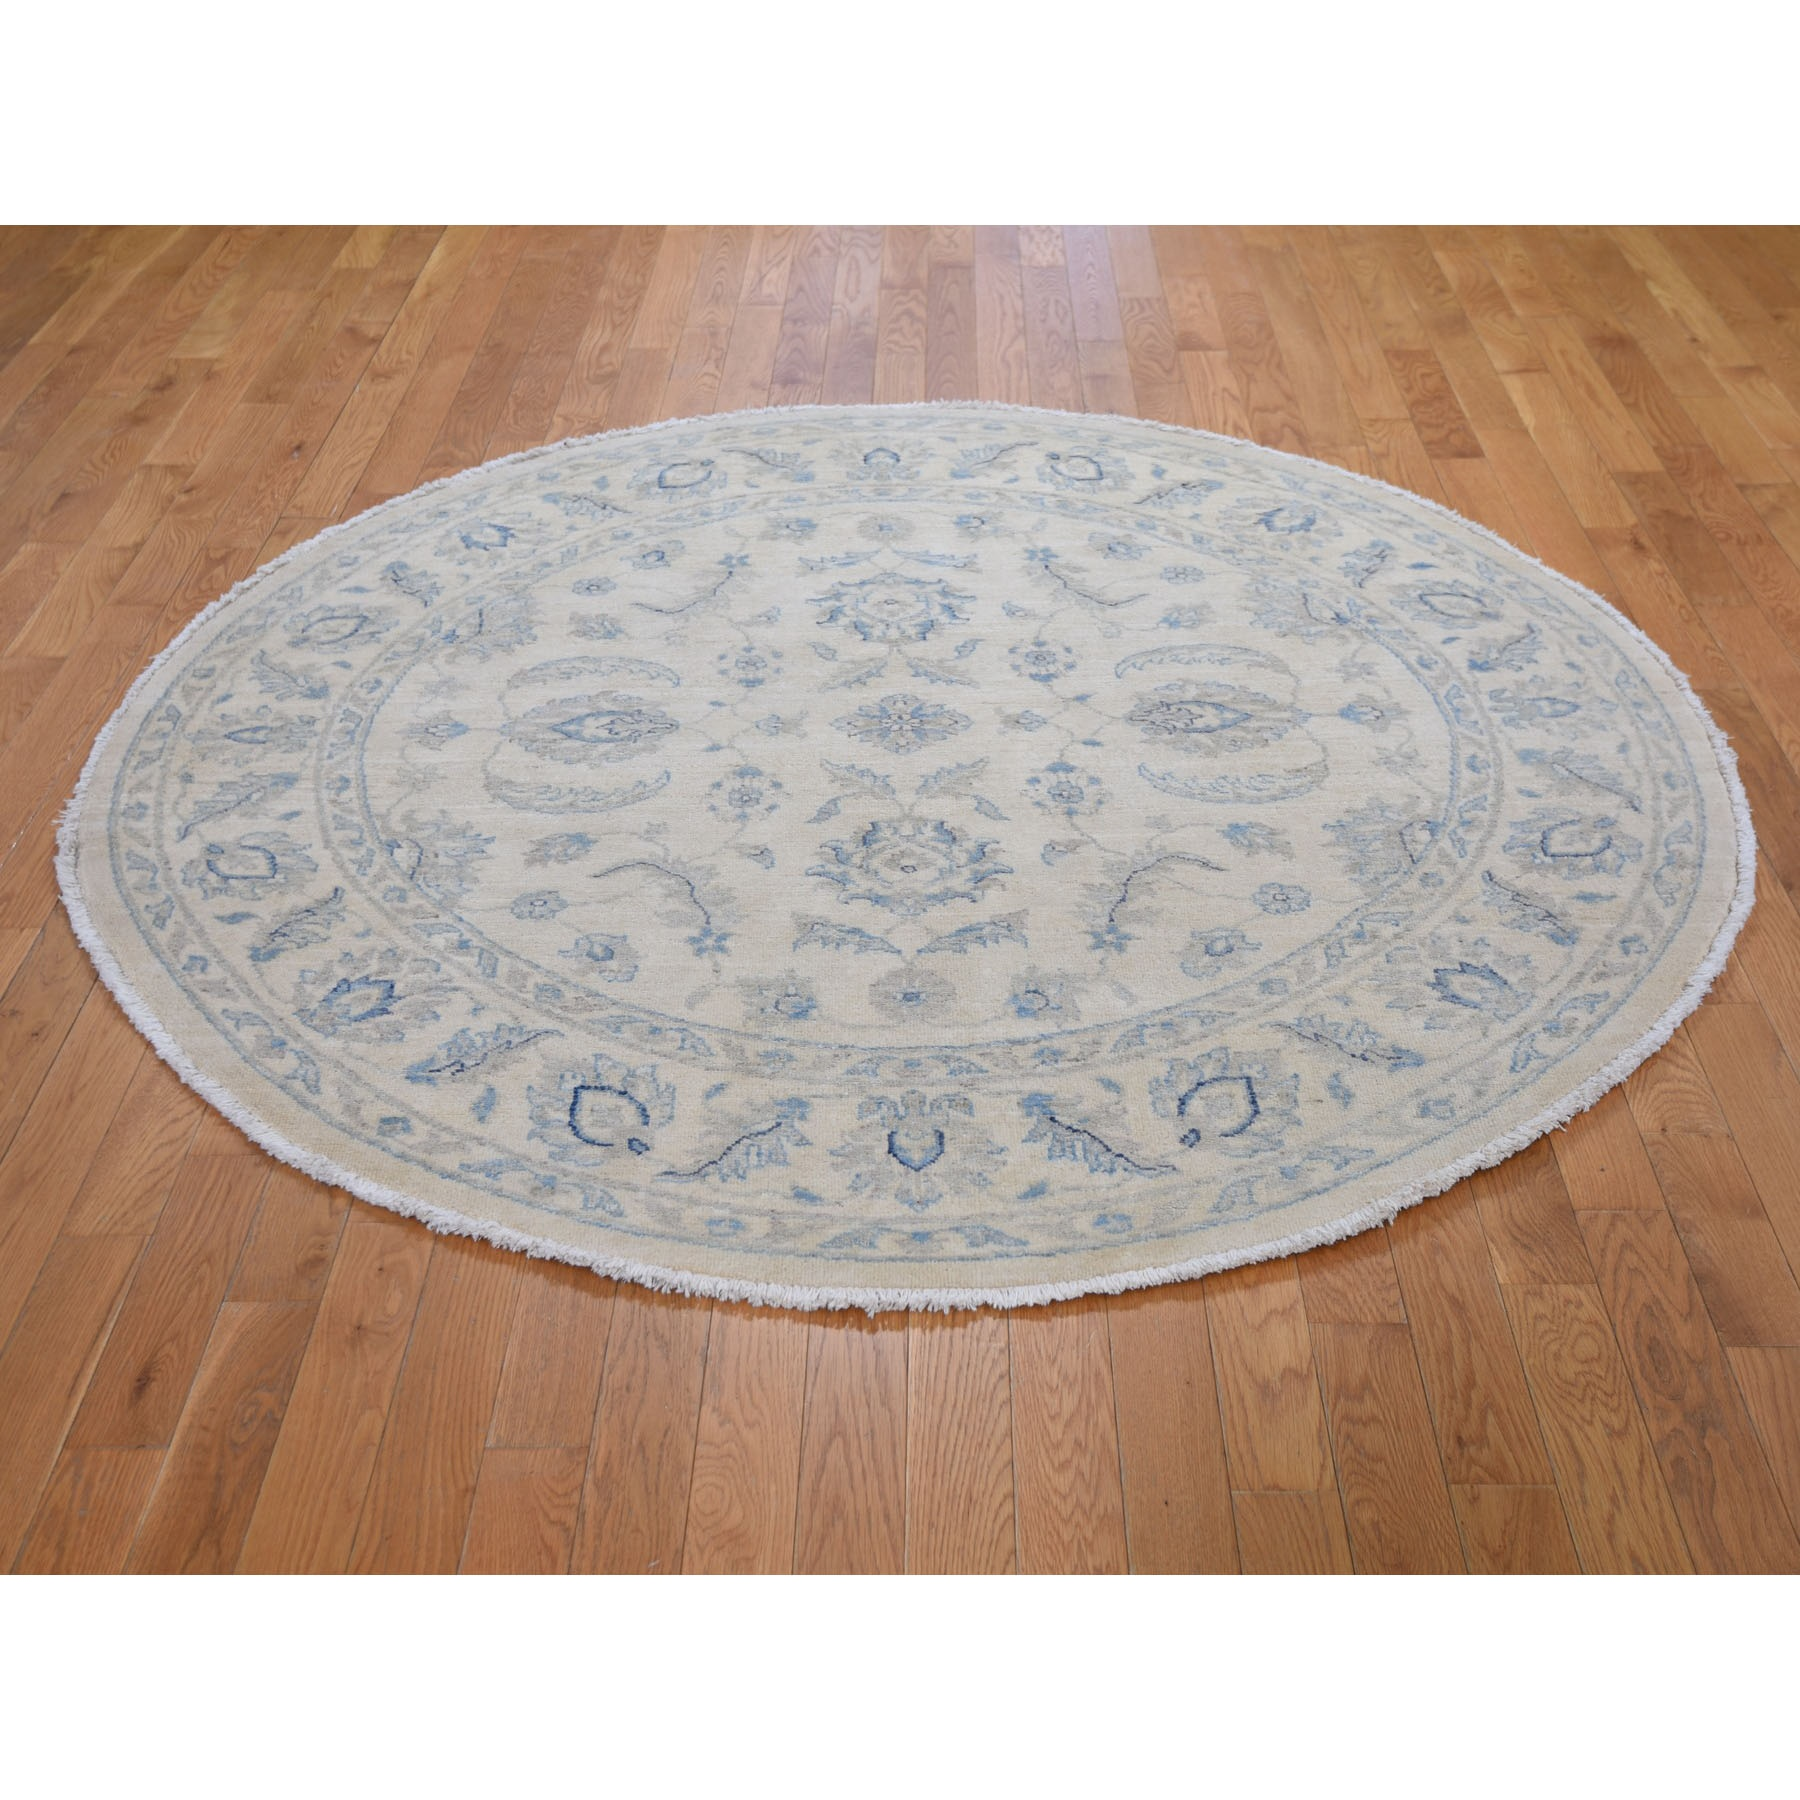 "6'1""x6'1"" Ivory Zeigler Mahal Round Hand Woven Pure Wool Oriental Rug"